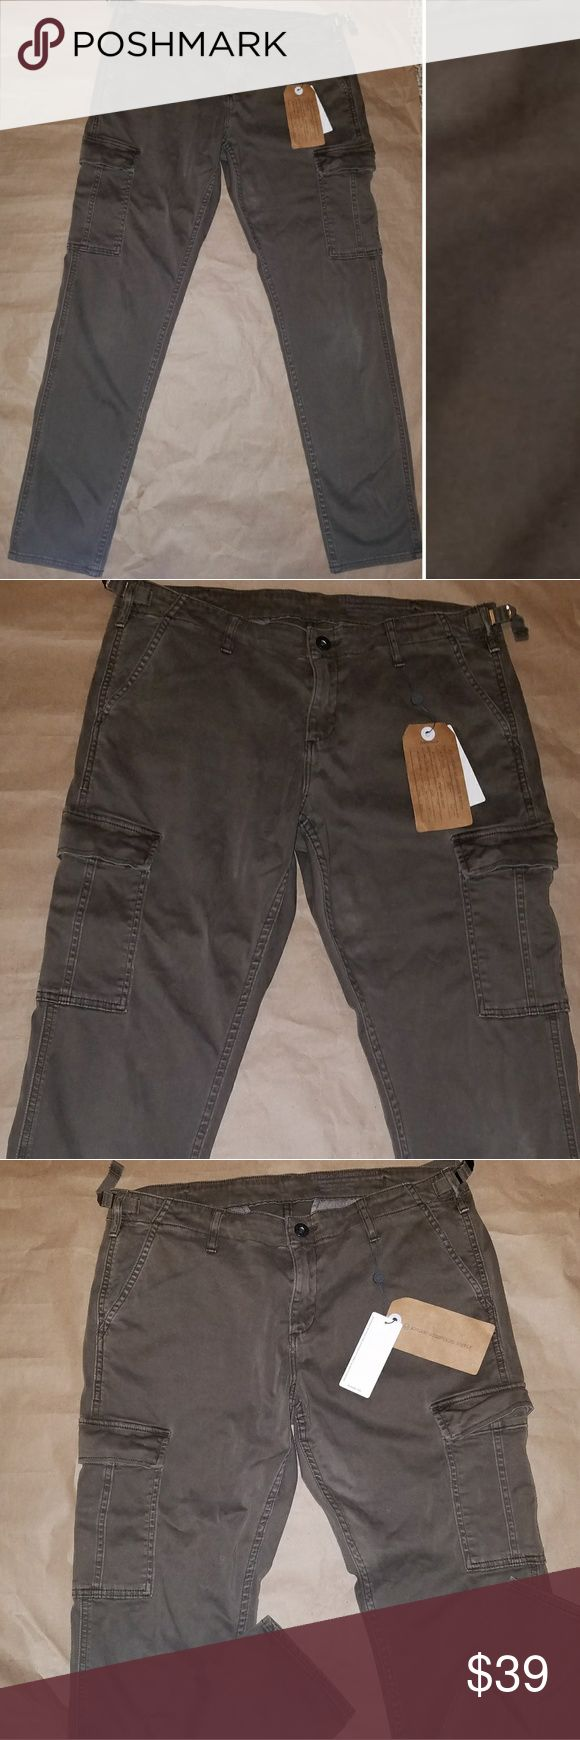 AG Adriano Goldschmied womens Cargo AG Adriano Goldschmied OD Green Cargo Pants size 32 Ag Adriano Goldschmied Pants Ankle & Cropped